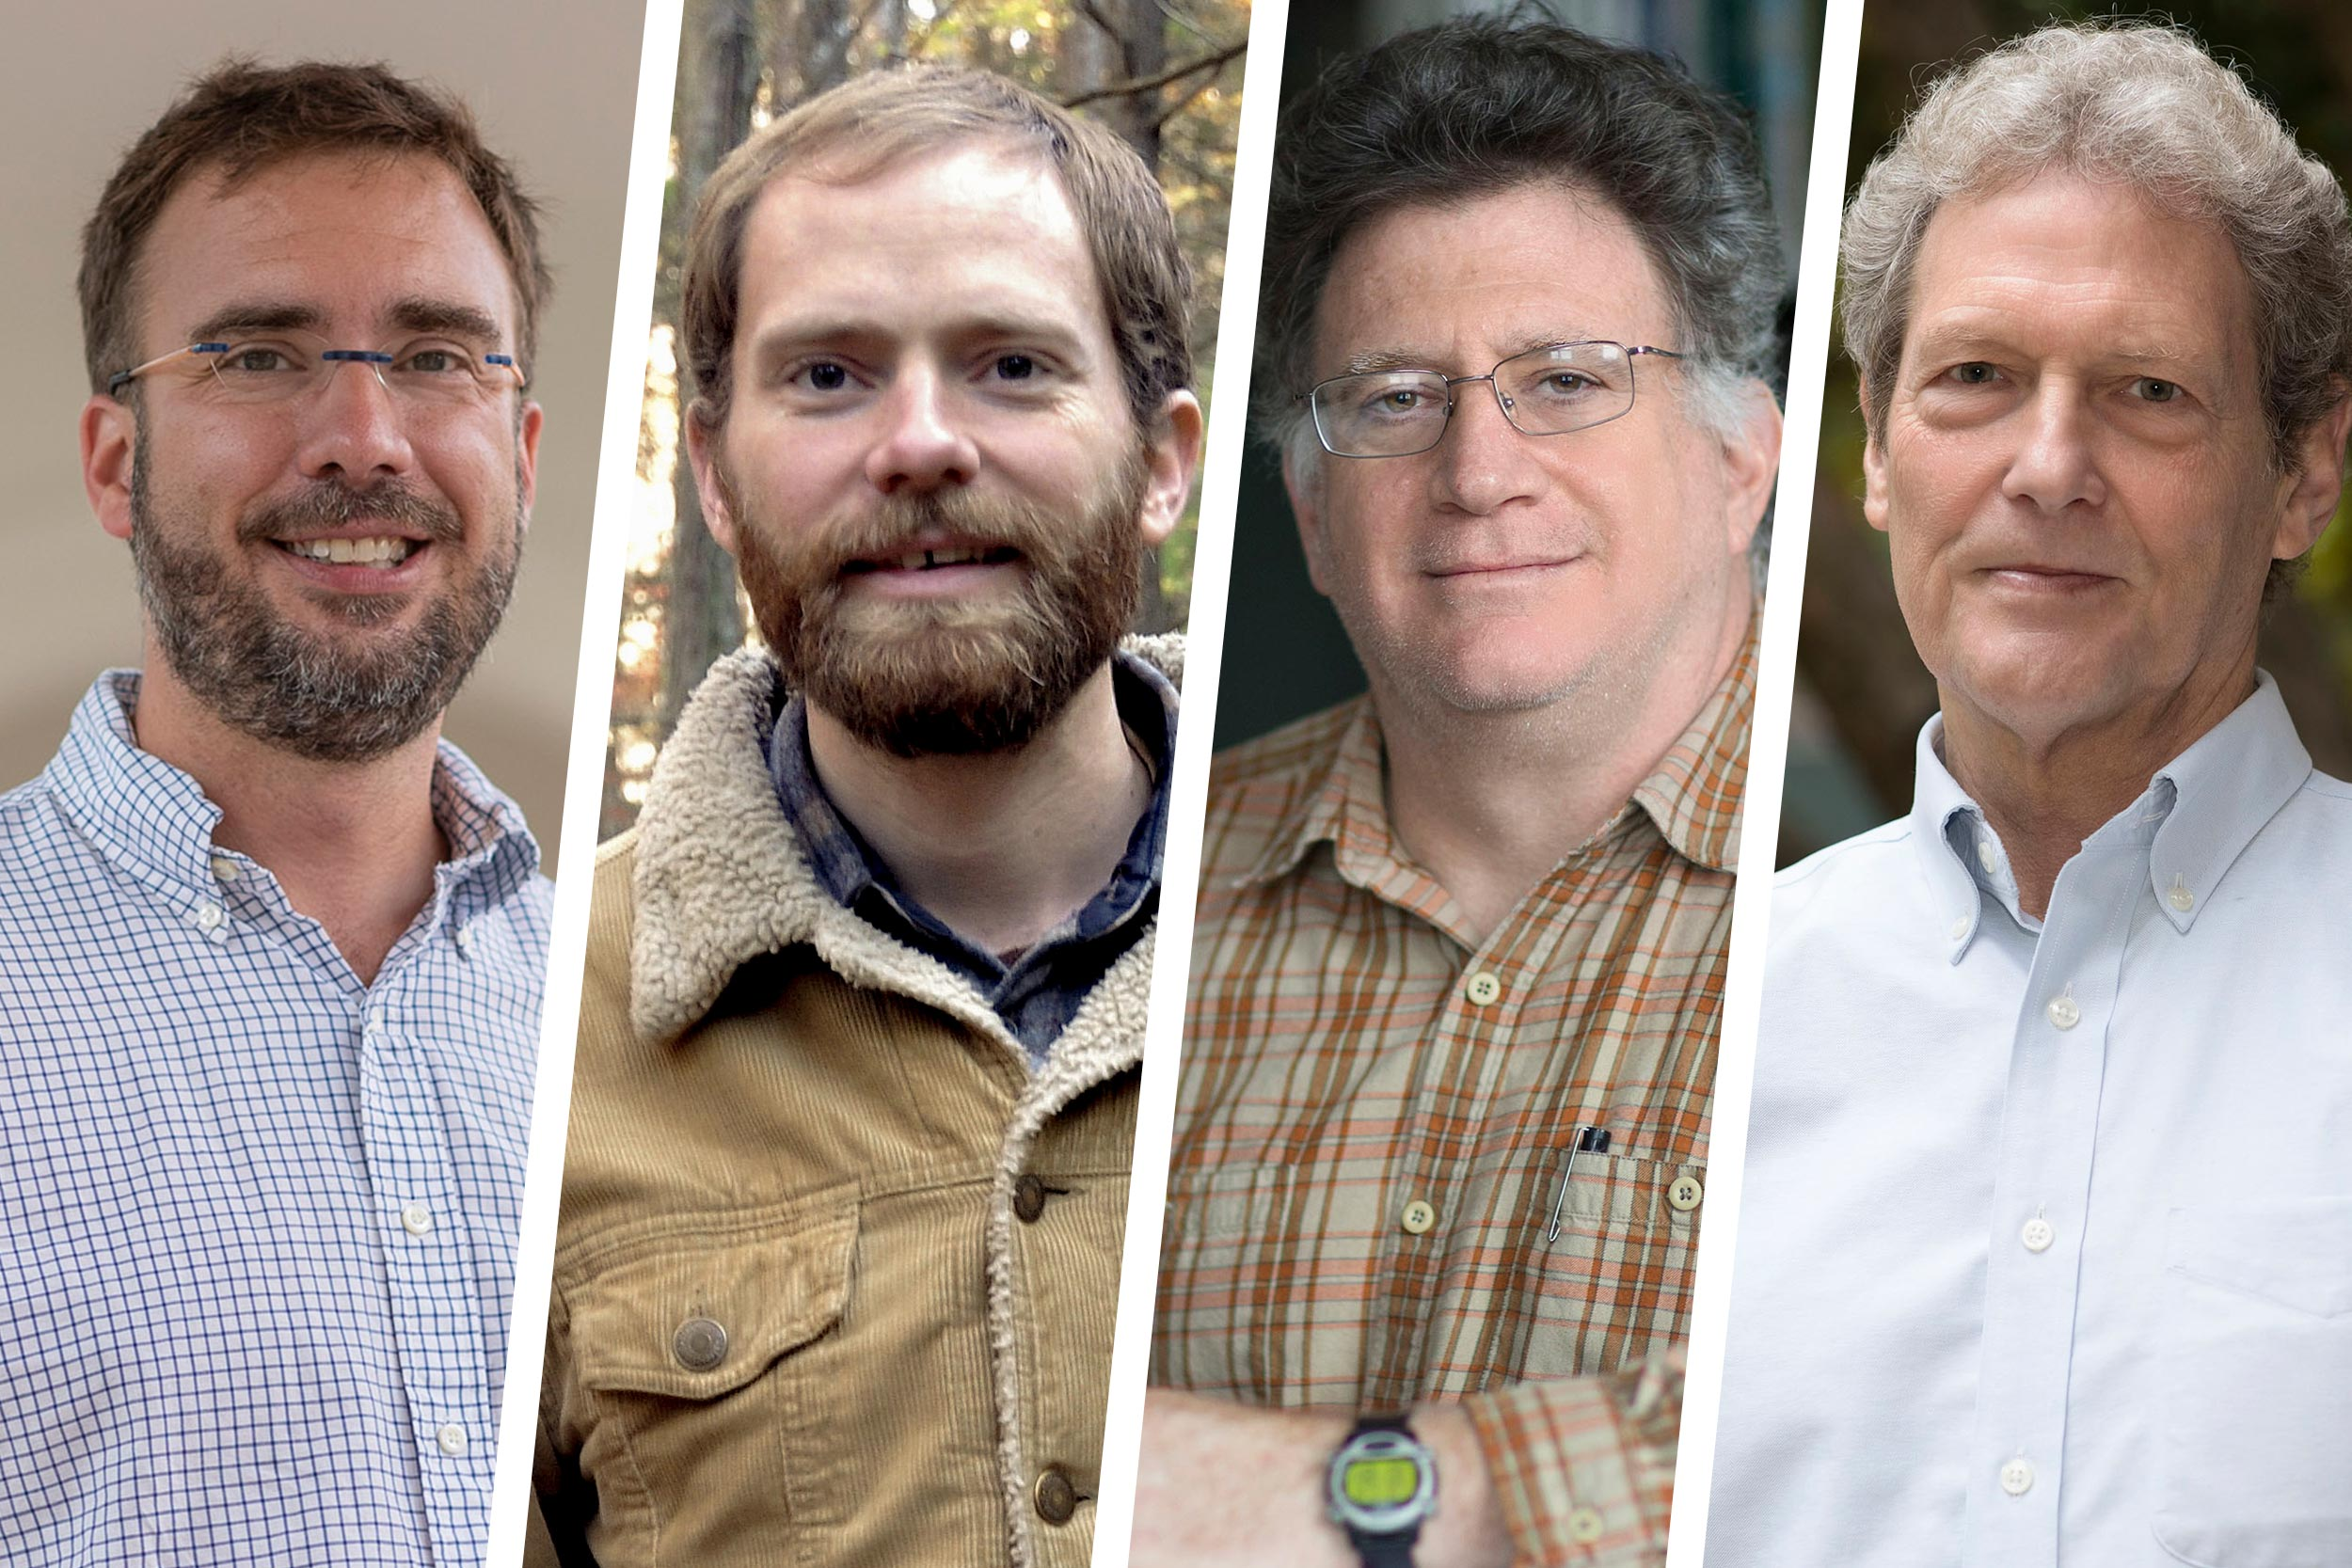 Professors Bryan Berger, Ryan Huish, Manuel Lerdau and Michael Timko will seek to develop niche markets for Appalachia's unique natural resources. (Photos by Sanjay Suchak, Dan Addison, contributed)